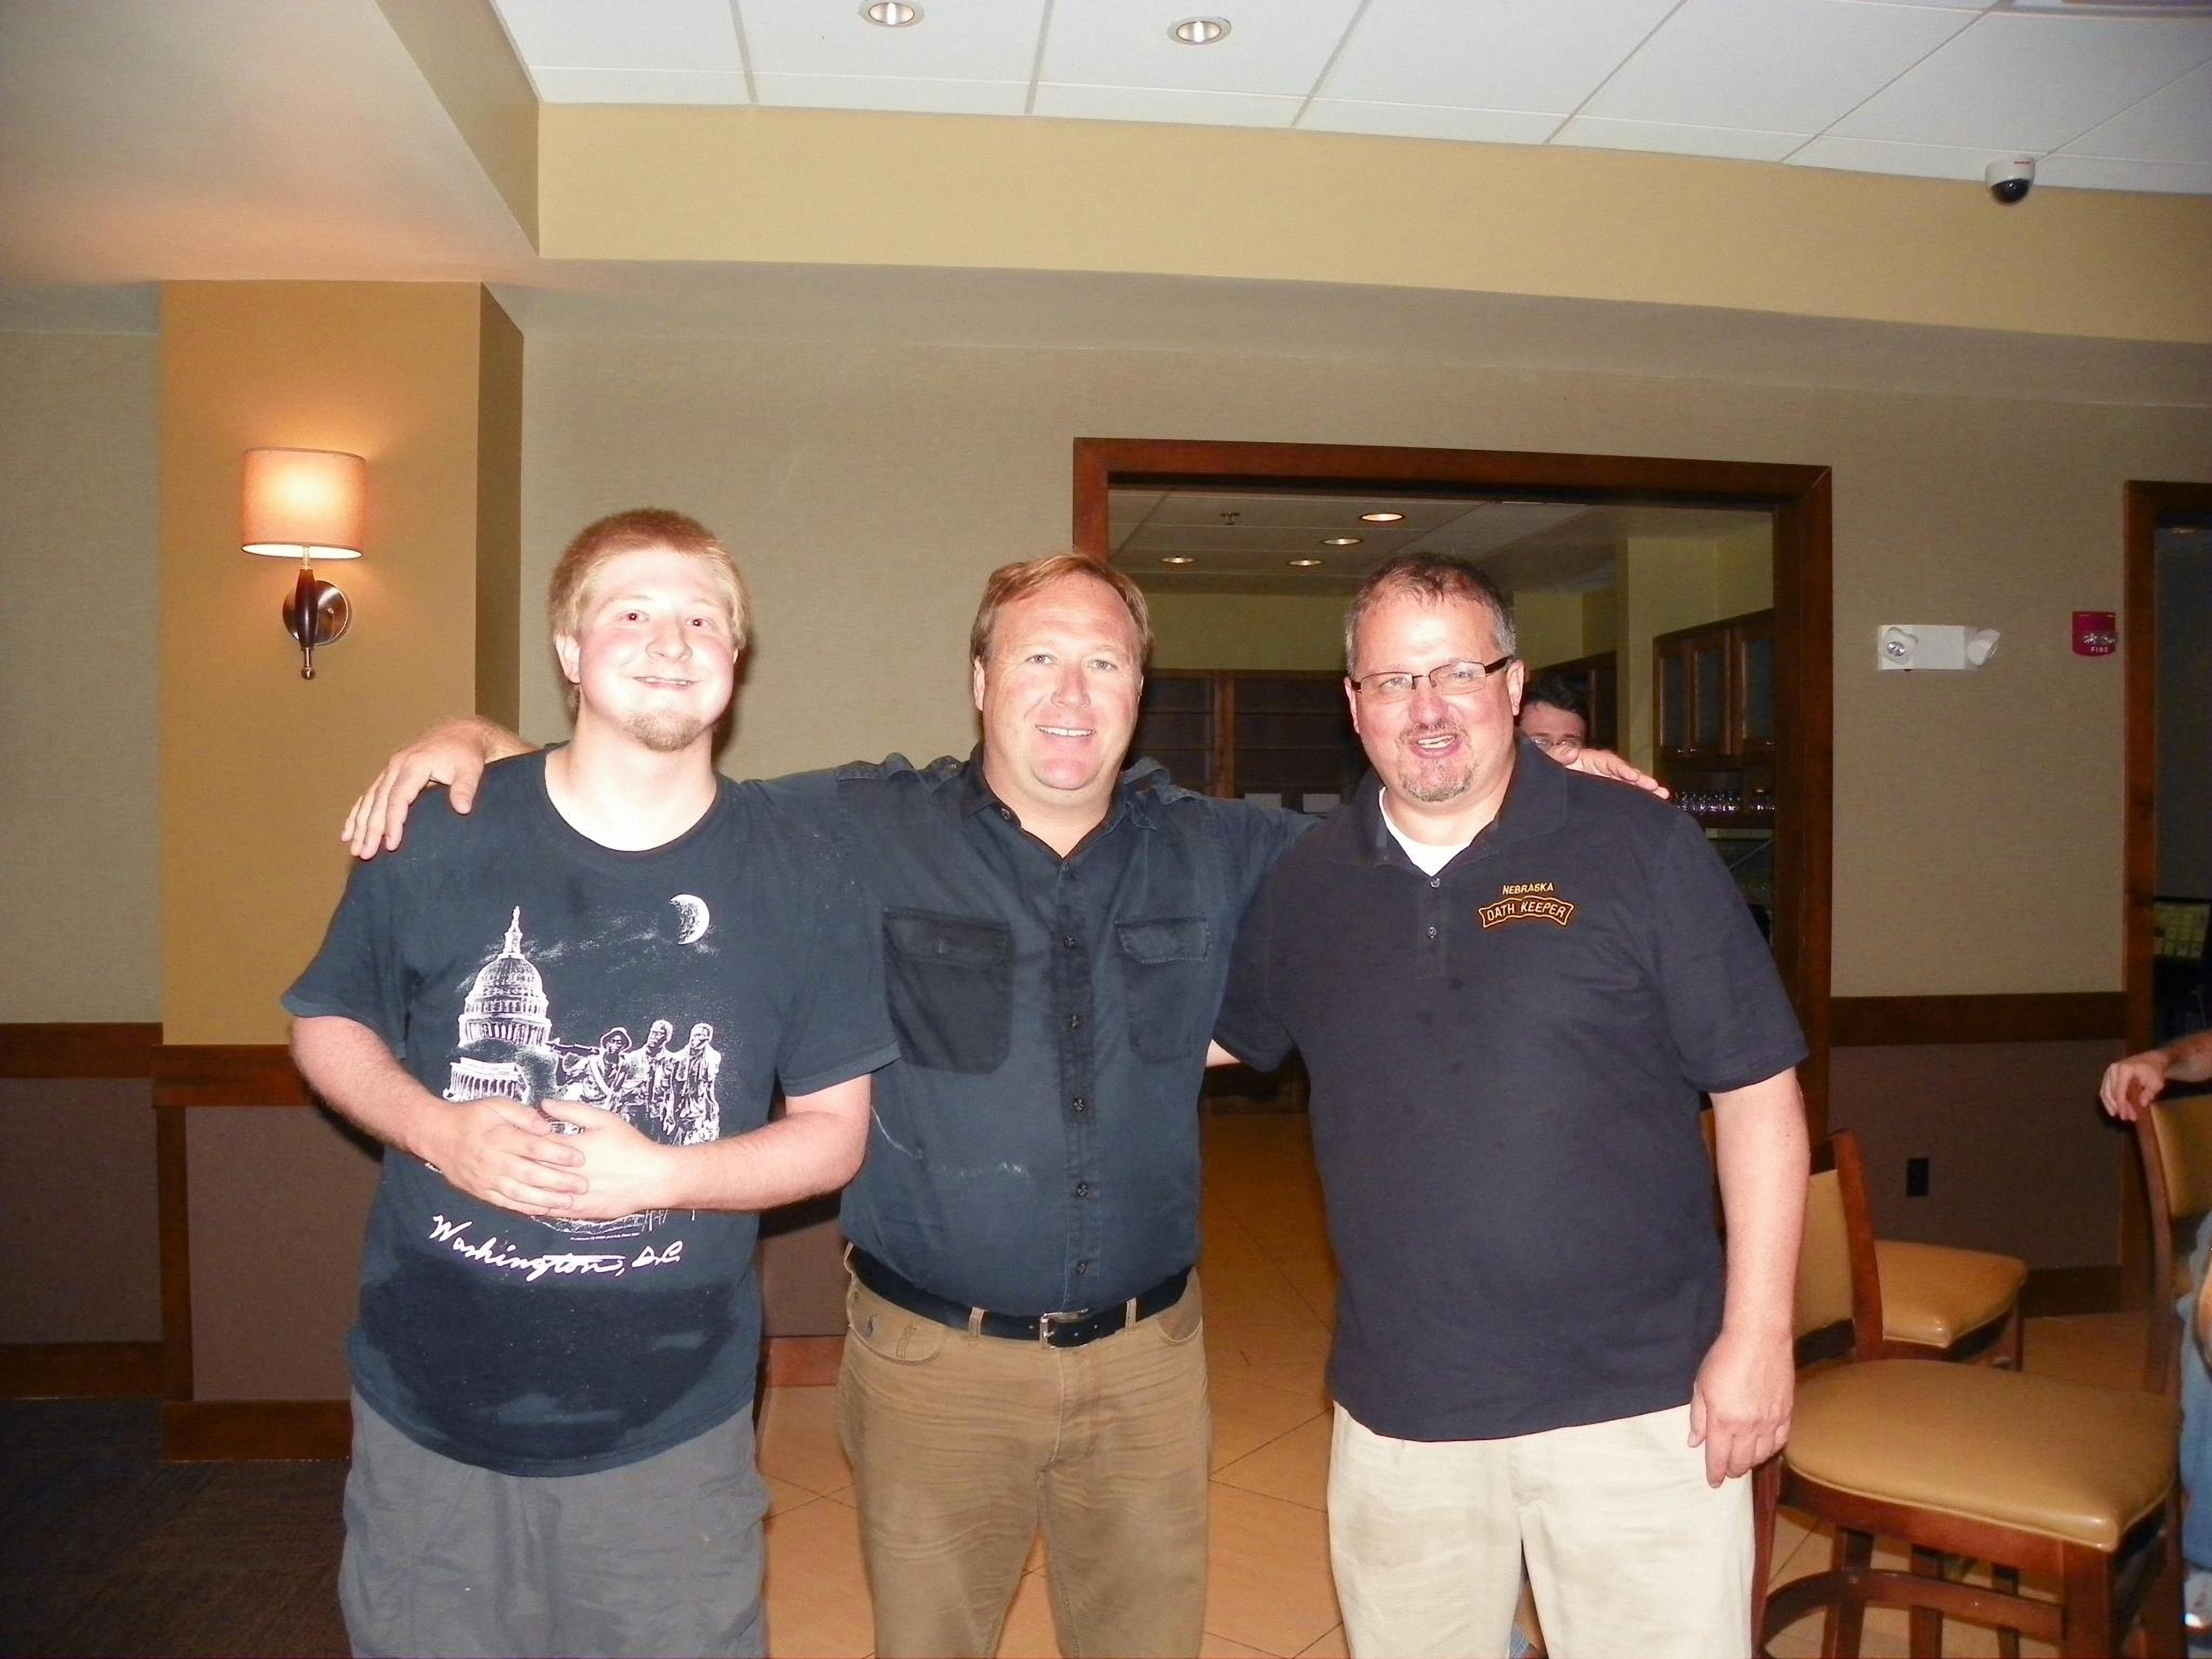 10-USWGO Founder Brian D. Hill with Infowars founder Alex Jones and Oath Keepers founder Stewart Rhodes